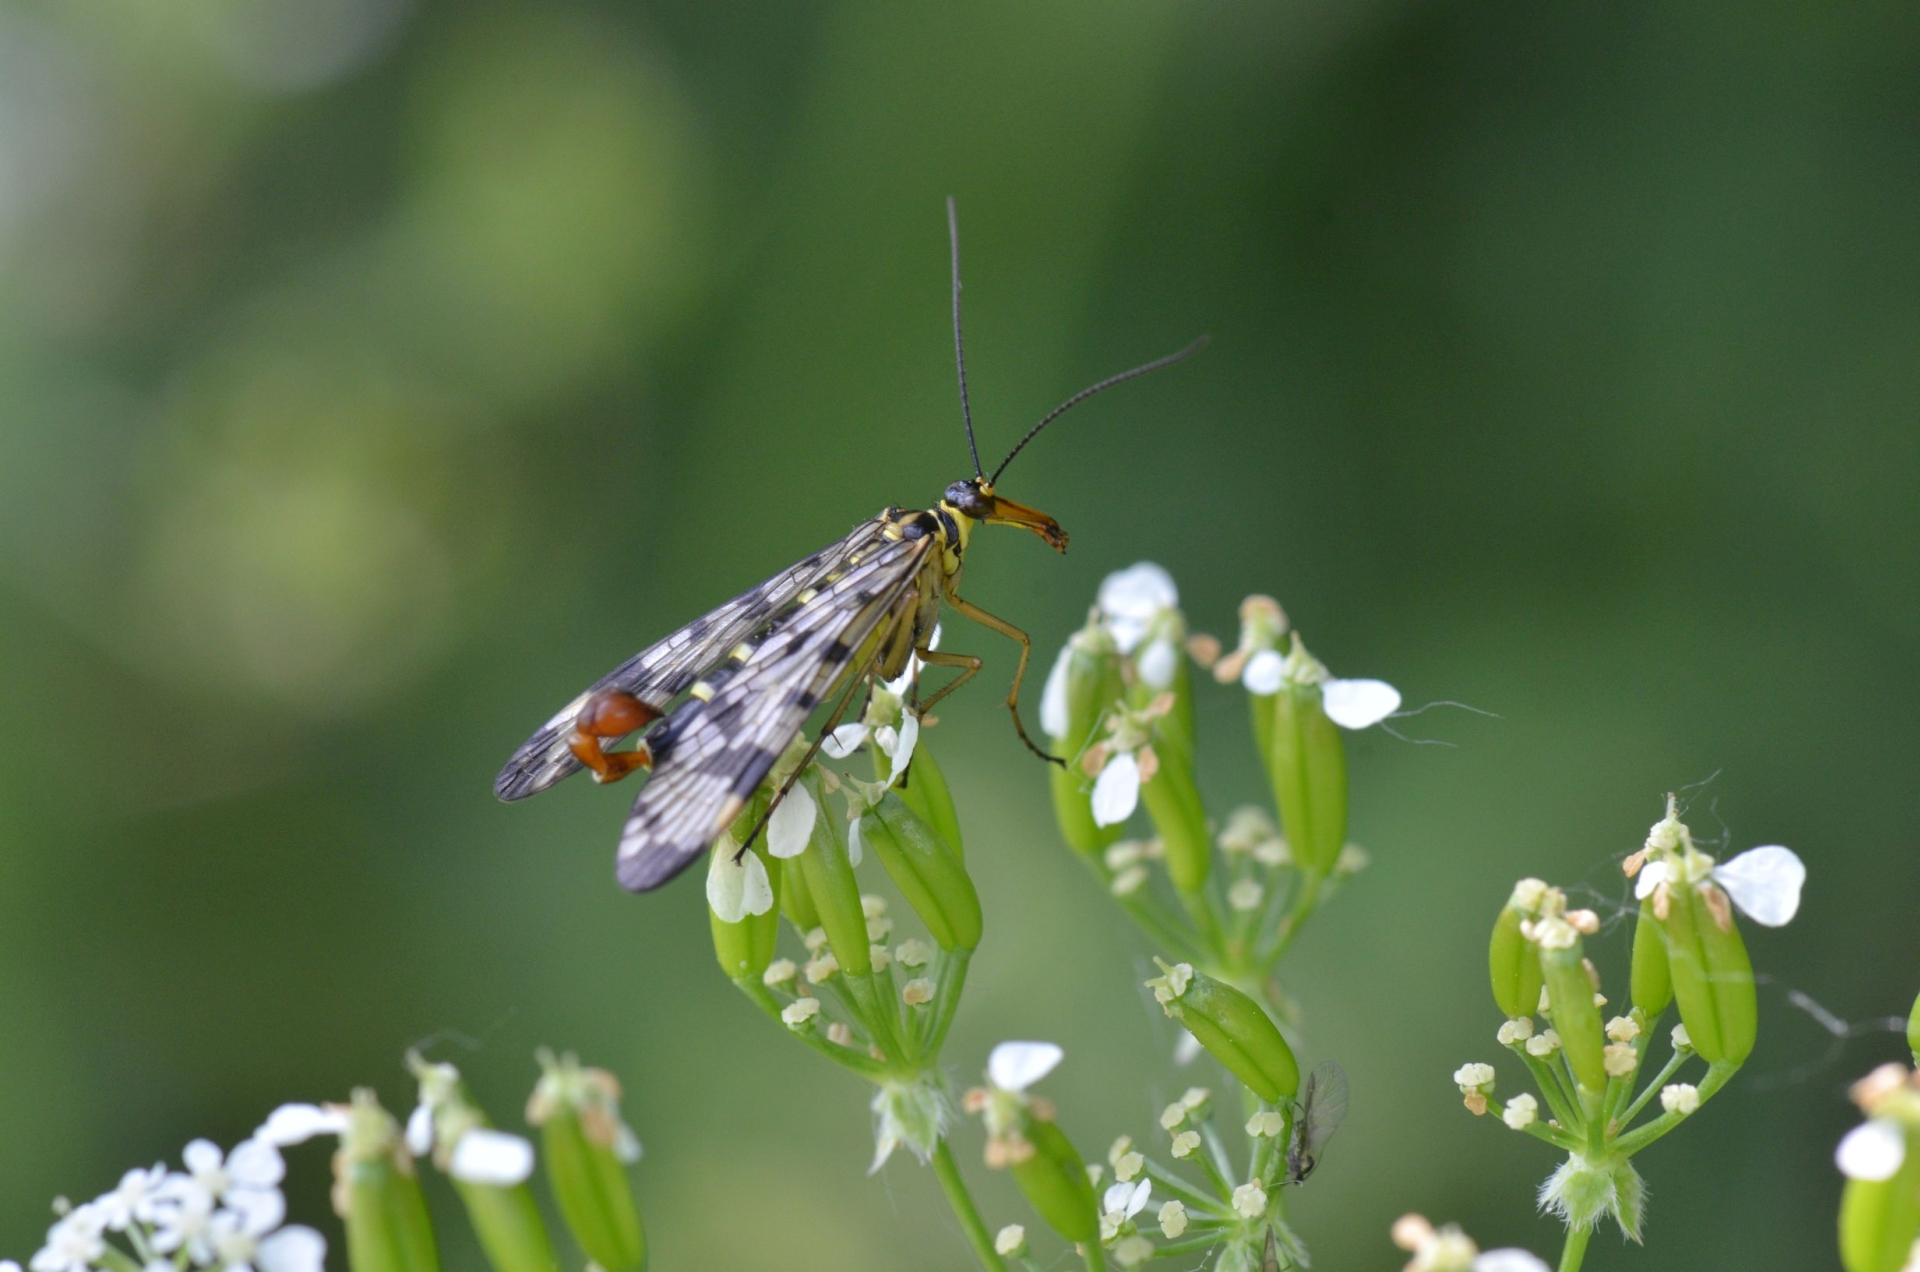 Fotograaf: Ans Heisen 'Insect'